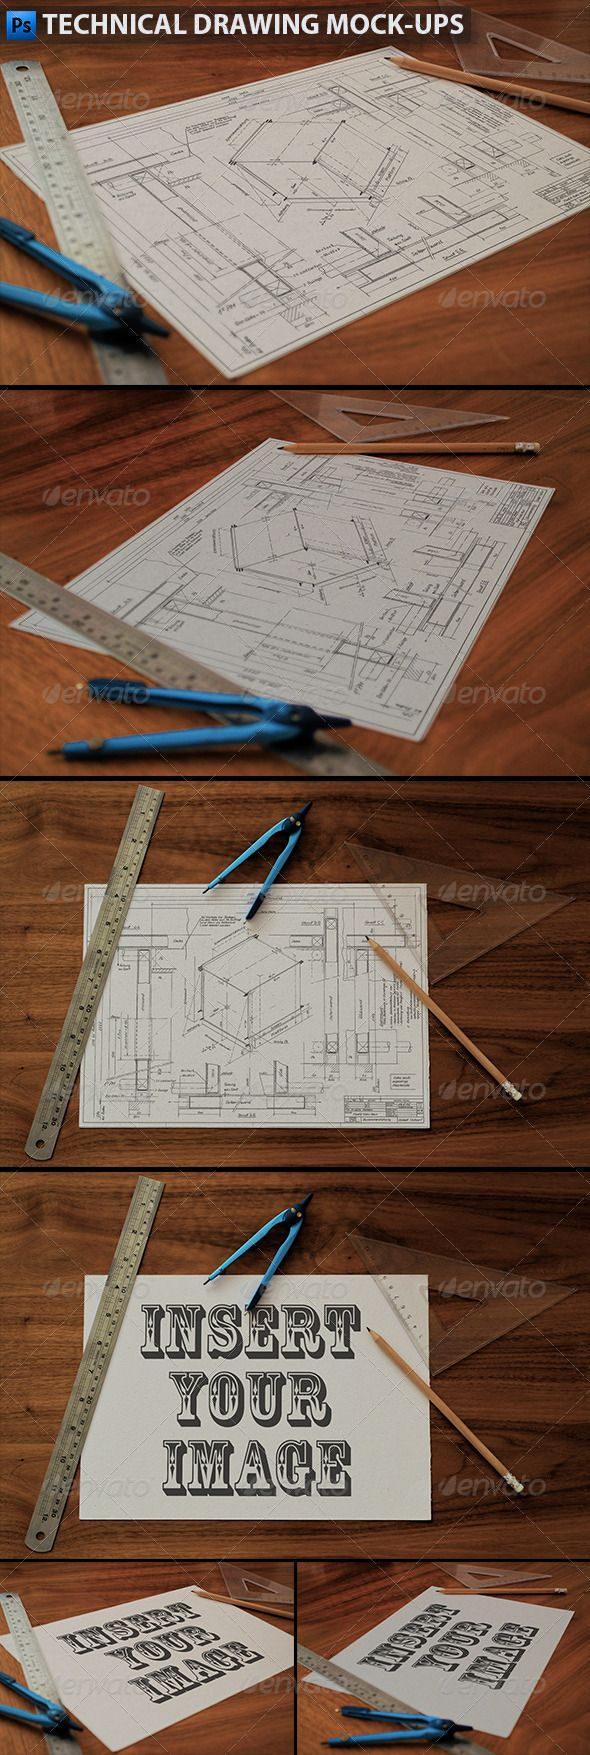 Technical Drawing   Drafting Mock-Ups  #GraphicRiver        Technical Drawing Mock-ups 3 mockups of a technical drawing. A4 paper on a wooden desk with a pencil, a metal ruler, plastic triangle ruler and a divider. A good mockup to showcase your sketches, drafts, blueprints, architectural plans and technical drawings.  File size: 2300×1500px  Image placeholder: 1800×1260px  Very easy to add your own image: Open the smart object -> Drag&Drop or paste in your image -> Save file & done! Notes: There is no pencil sketch effect added to your image. Only some overlay effects to make it look more realistic on paper. Backgrounds cannot be changed. Drawing image used in the preview is not included.     Created: 24October13 GraphicsFilesIncluded: PhotoshopPSD HighResolution: No Layered: Yes MinimumAdobeCSVersion: CS4 PixelDimensions: 2300x1500 Tags: PaperMockup #a4mockup #architecturalplan #architecturesketch #bluprint #designmockup #divider #draftingpaper #drawingmockup #drawingonpaper #handdrawn #industrialmockup #pencilsketch #realisticmockup #ruler #sketchonpaper #sketchpreview #sketchshowcase #techincaldrawing #technicalblueprint #technicalsketch #triangleruler